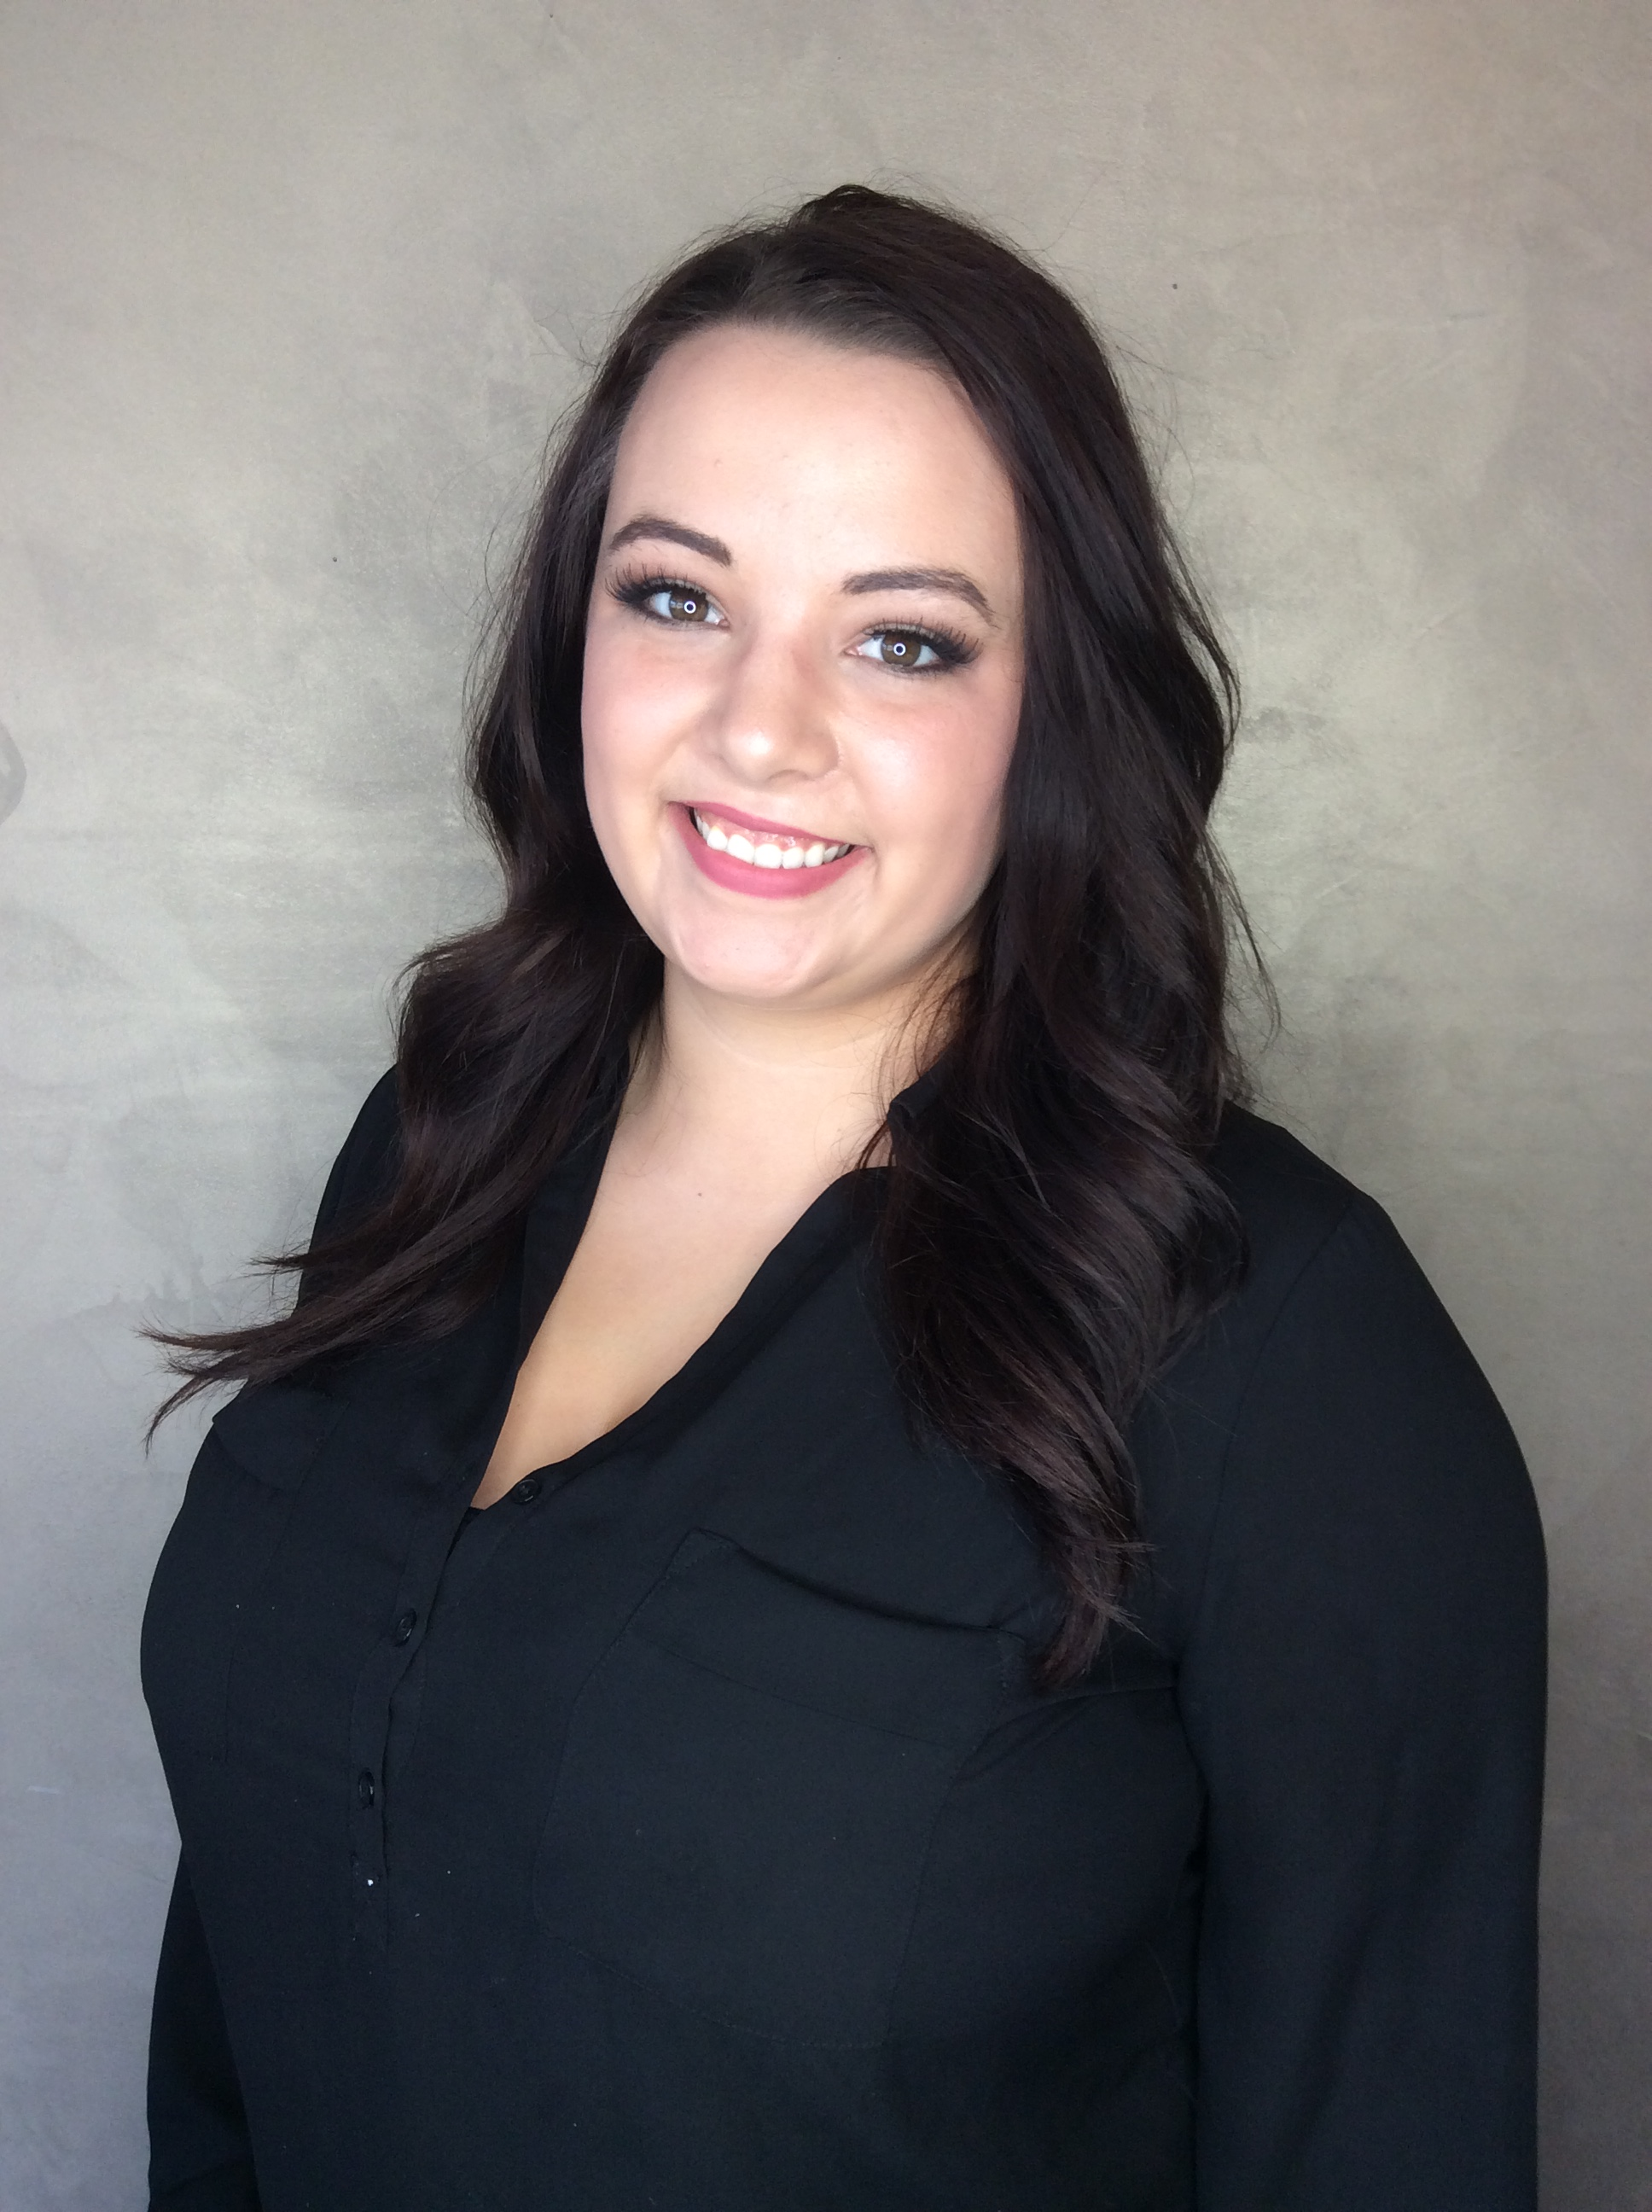 Marissa adevia spasalon for Adevia salon forest lake mn